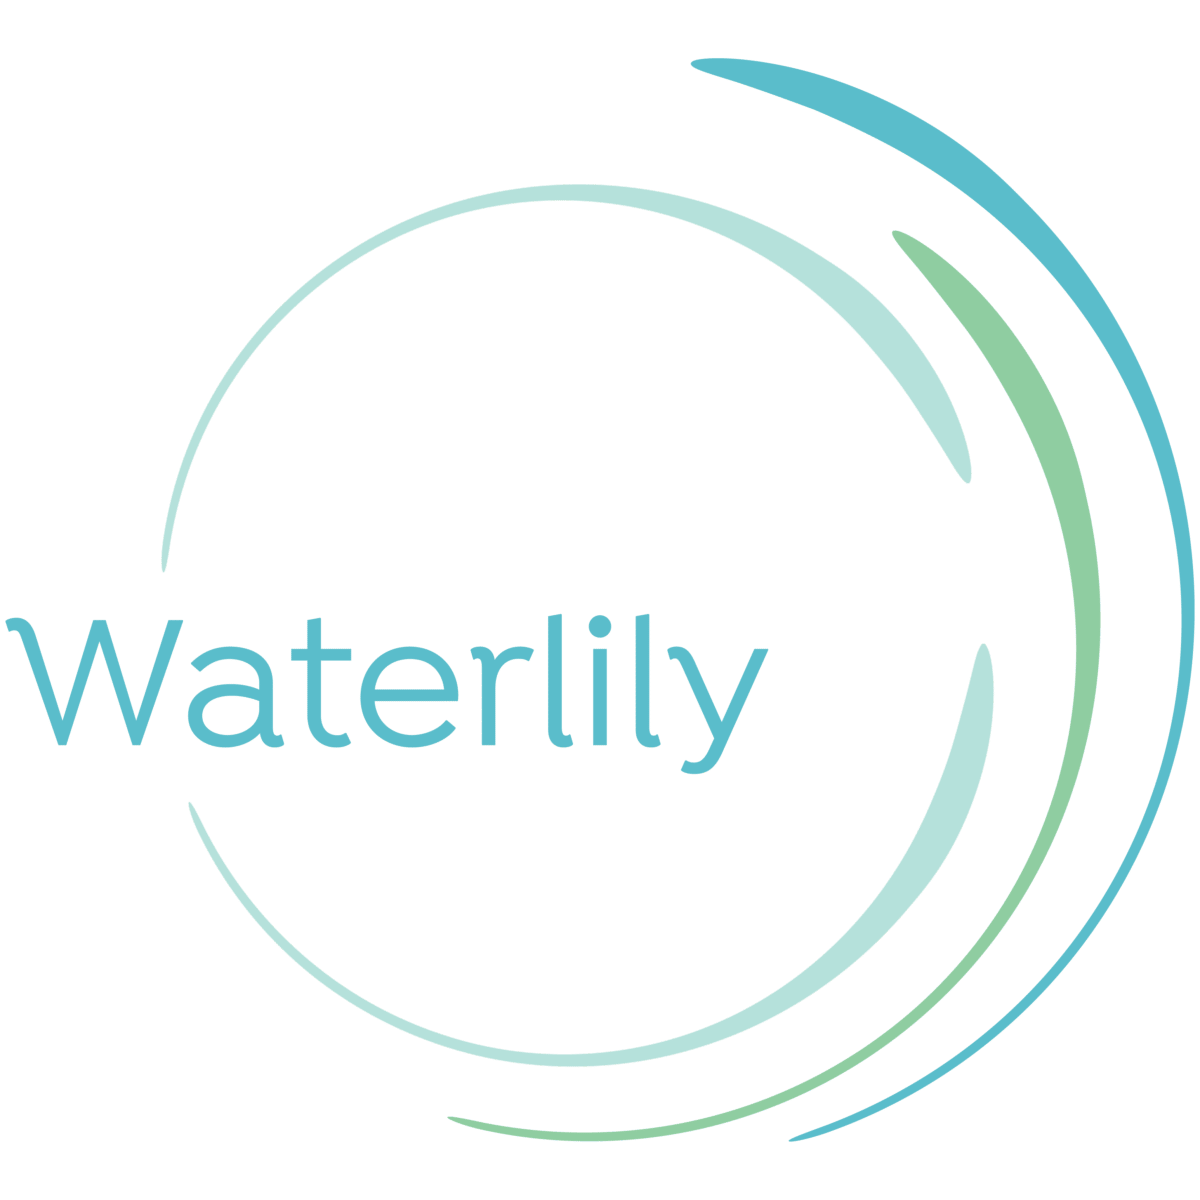 Logo de Waterlily